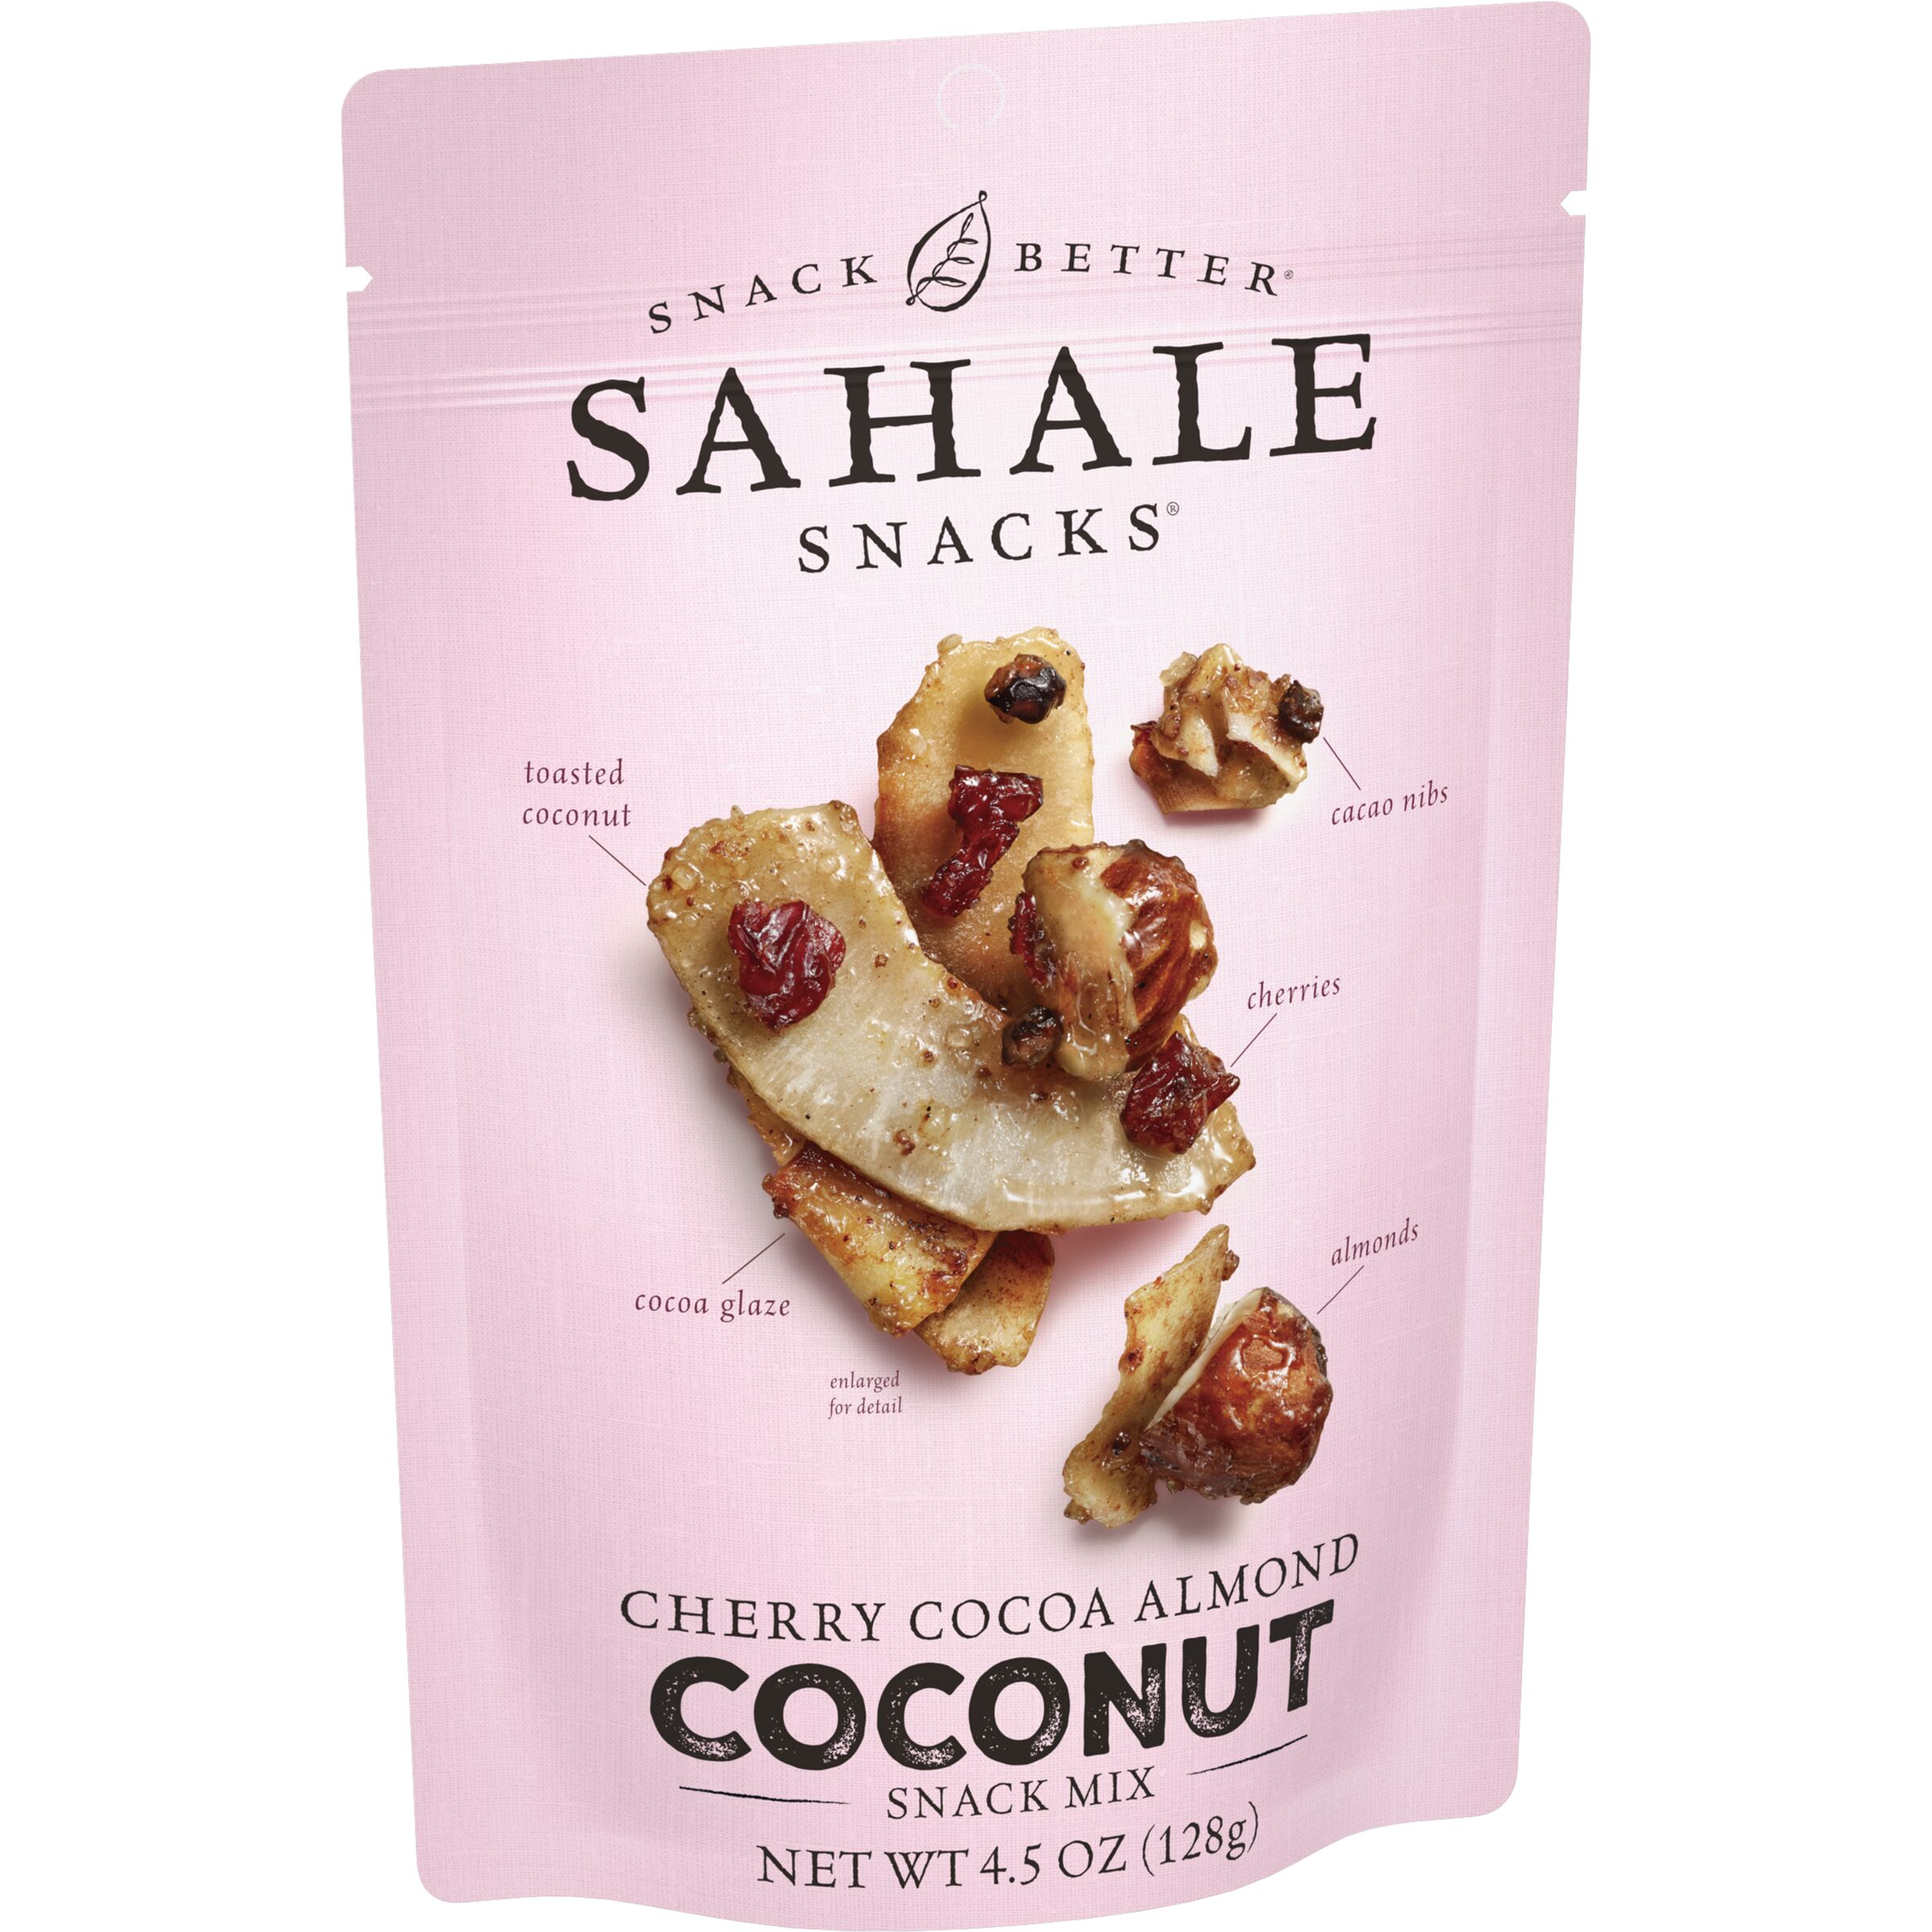 Sahale Snacks  Cherry Cocoa Almond Coconut Snack Mix